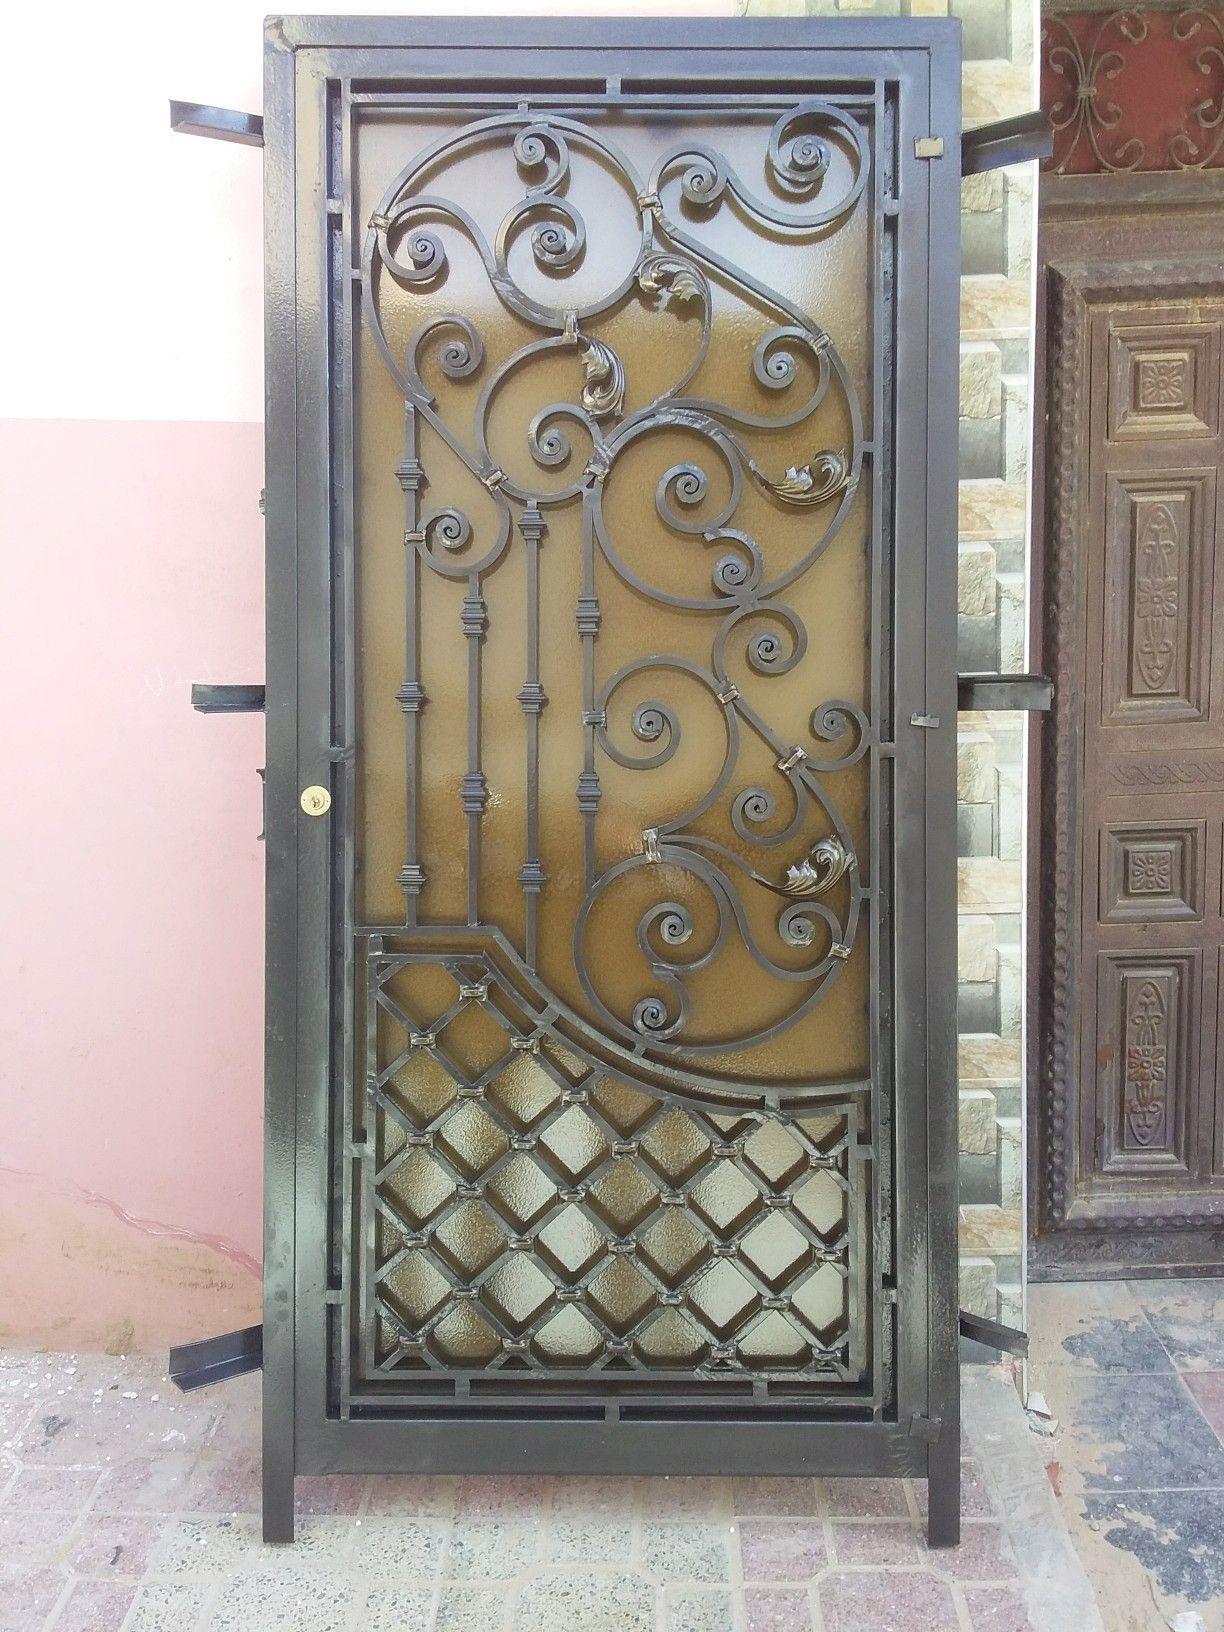 Iron Windows Iron Doors Iron Window Grill Gate Design Door Design Metal Fab Grill Design Wrought Iron Gates S Cancelli Di Ferro Cancelli Porte In Ferro